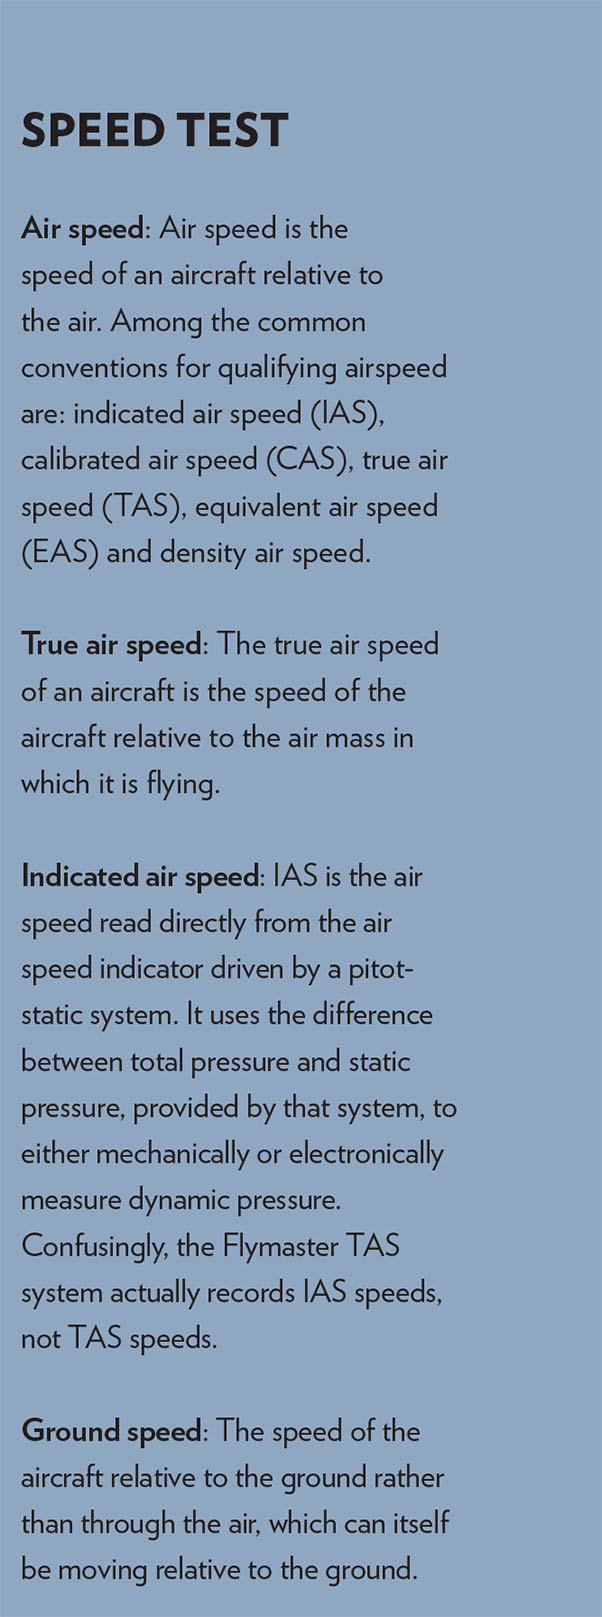 airspeed-definitions